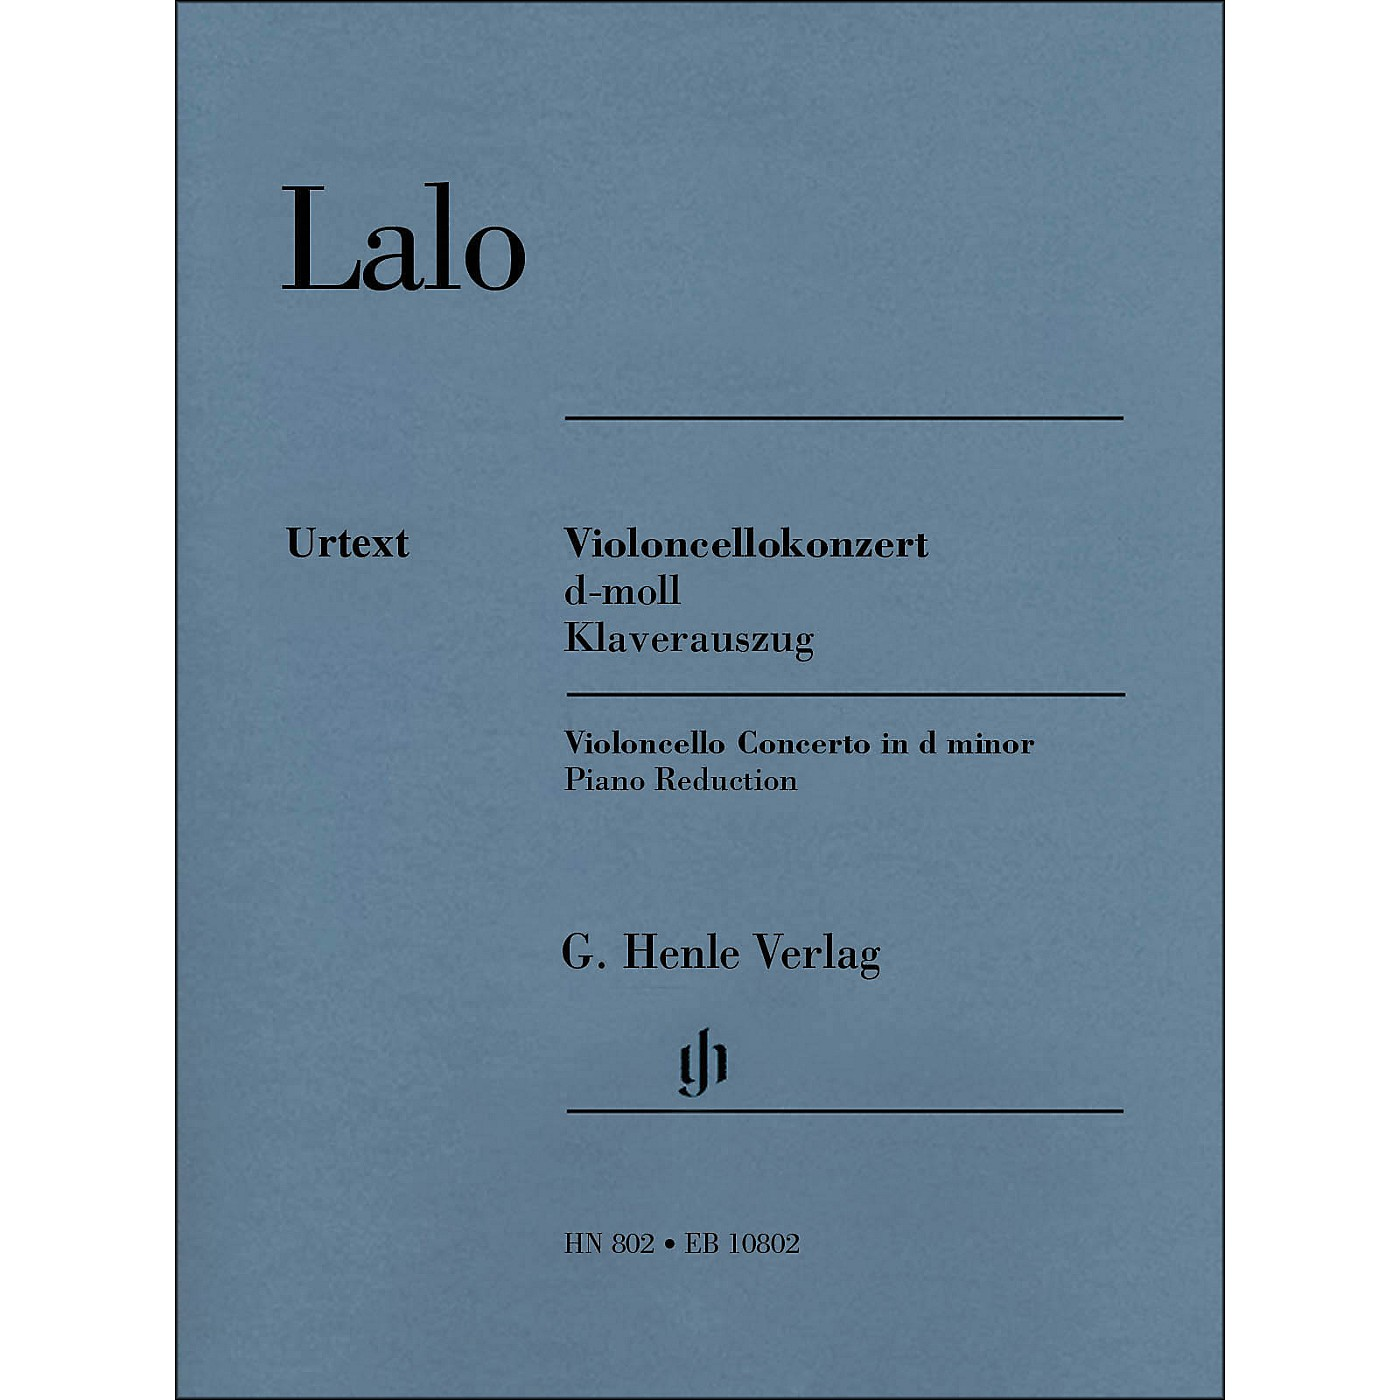 G. Henle Verlag Concerto D Minor for Violoncello And Orchestra Piano Reduction By Lalo / Jost thumbnail